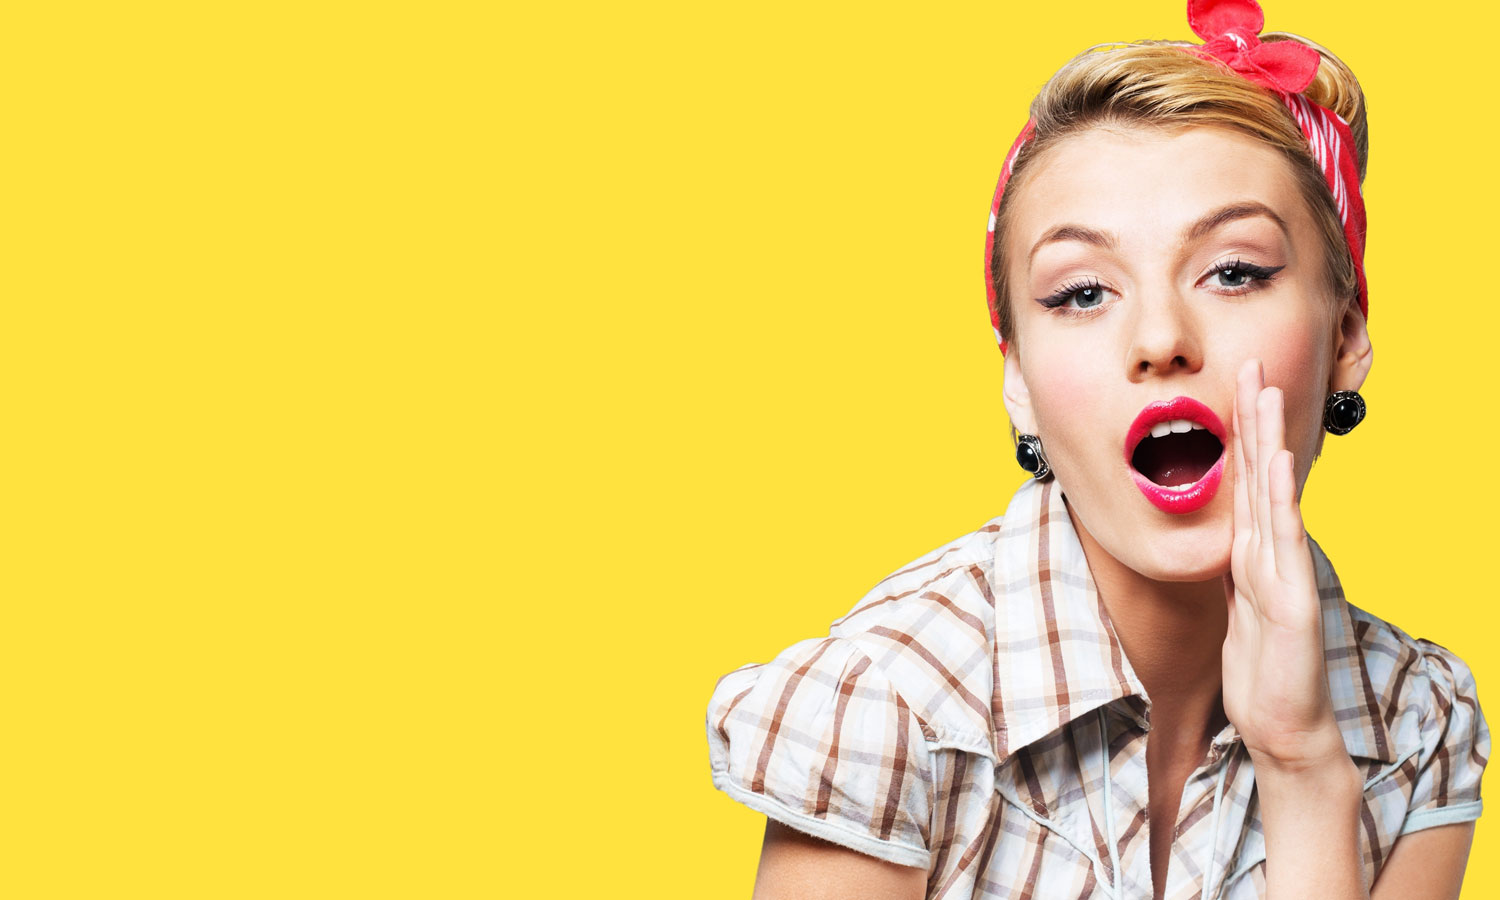 1950's Pin Up girl on yellow background with red bow